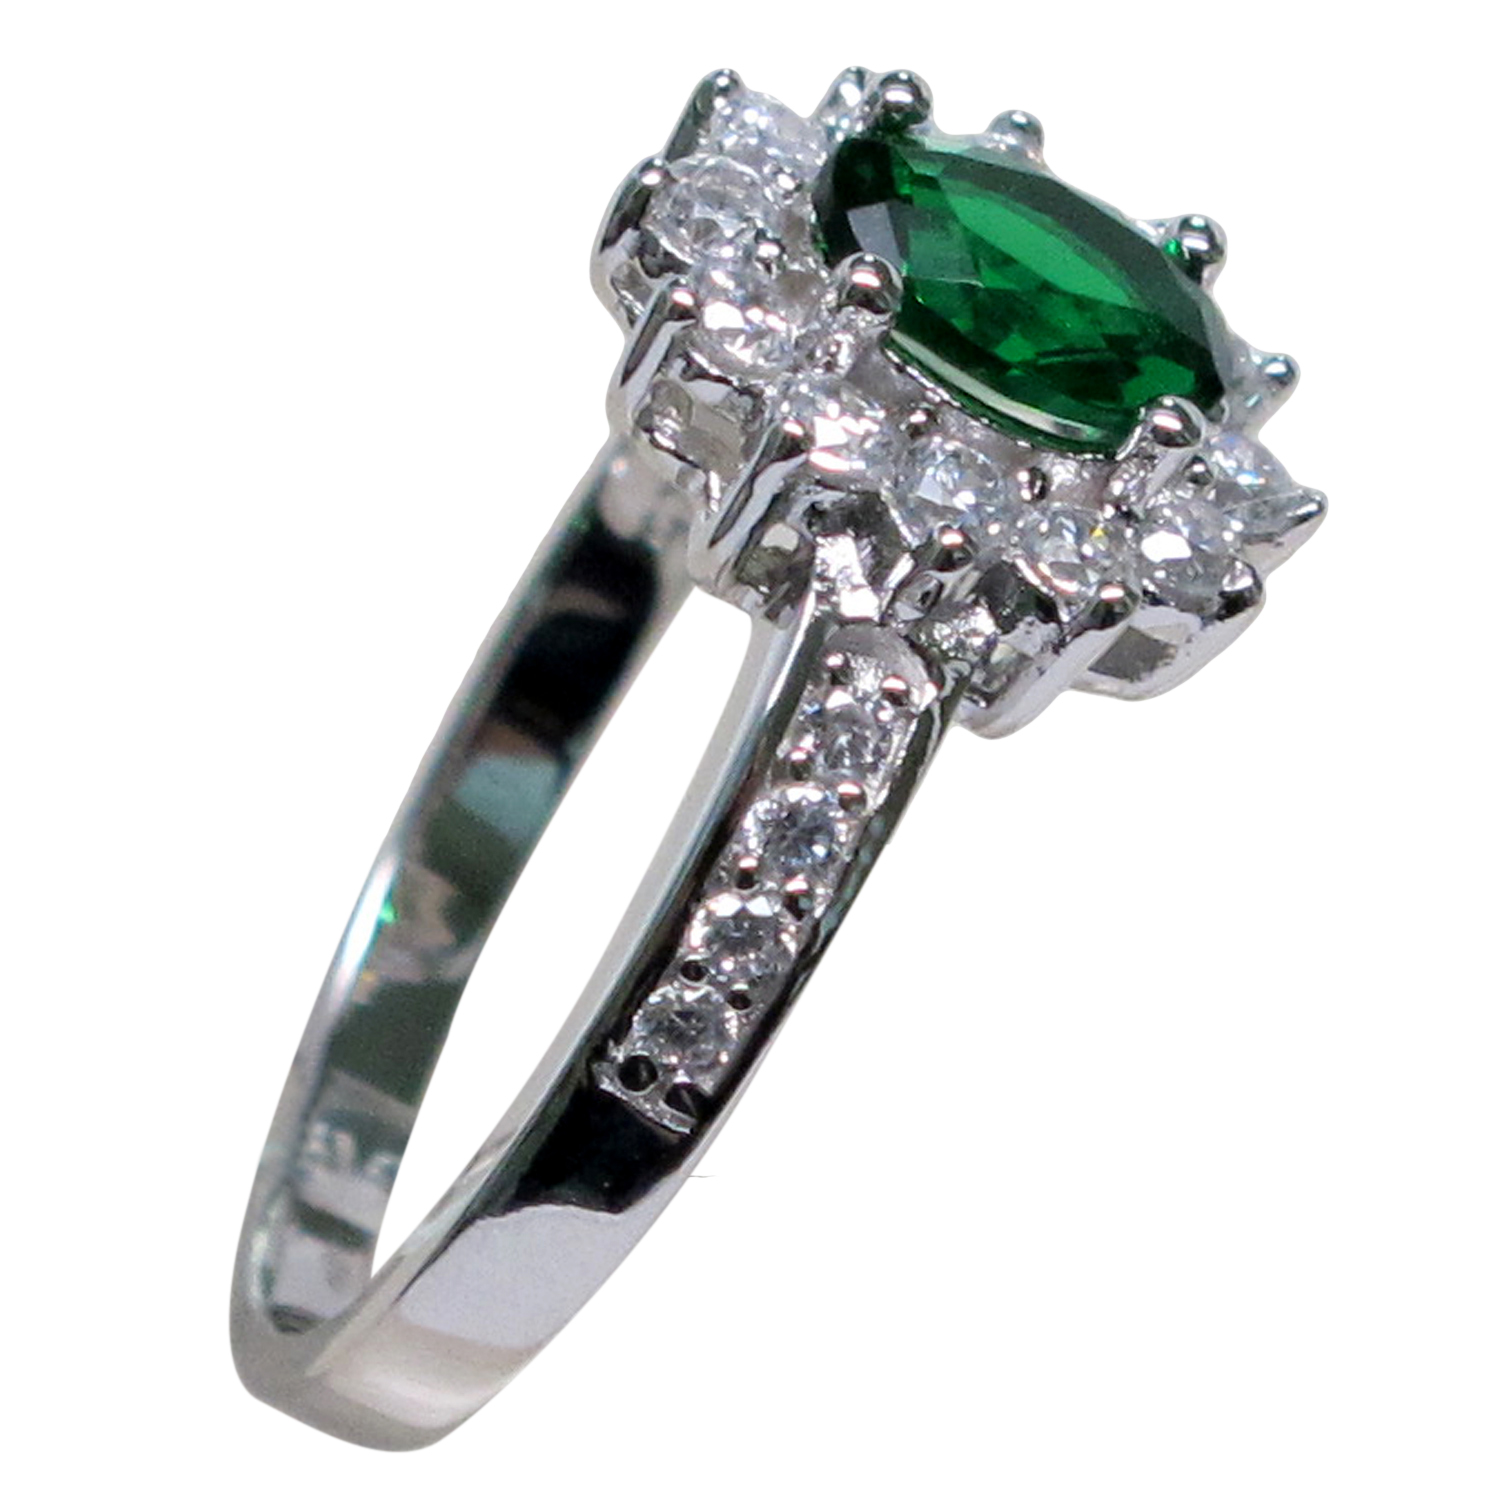 beautiful 1 ct emerald 925 sterling silver ring size 5 10